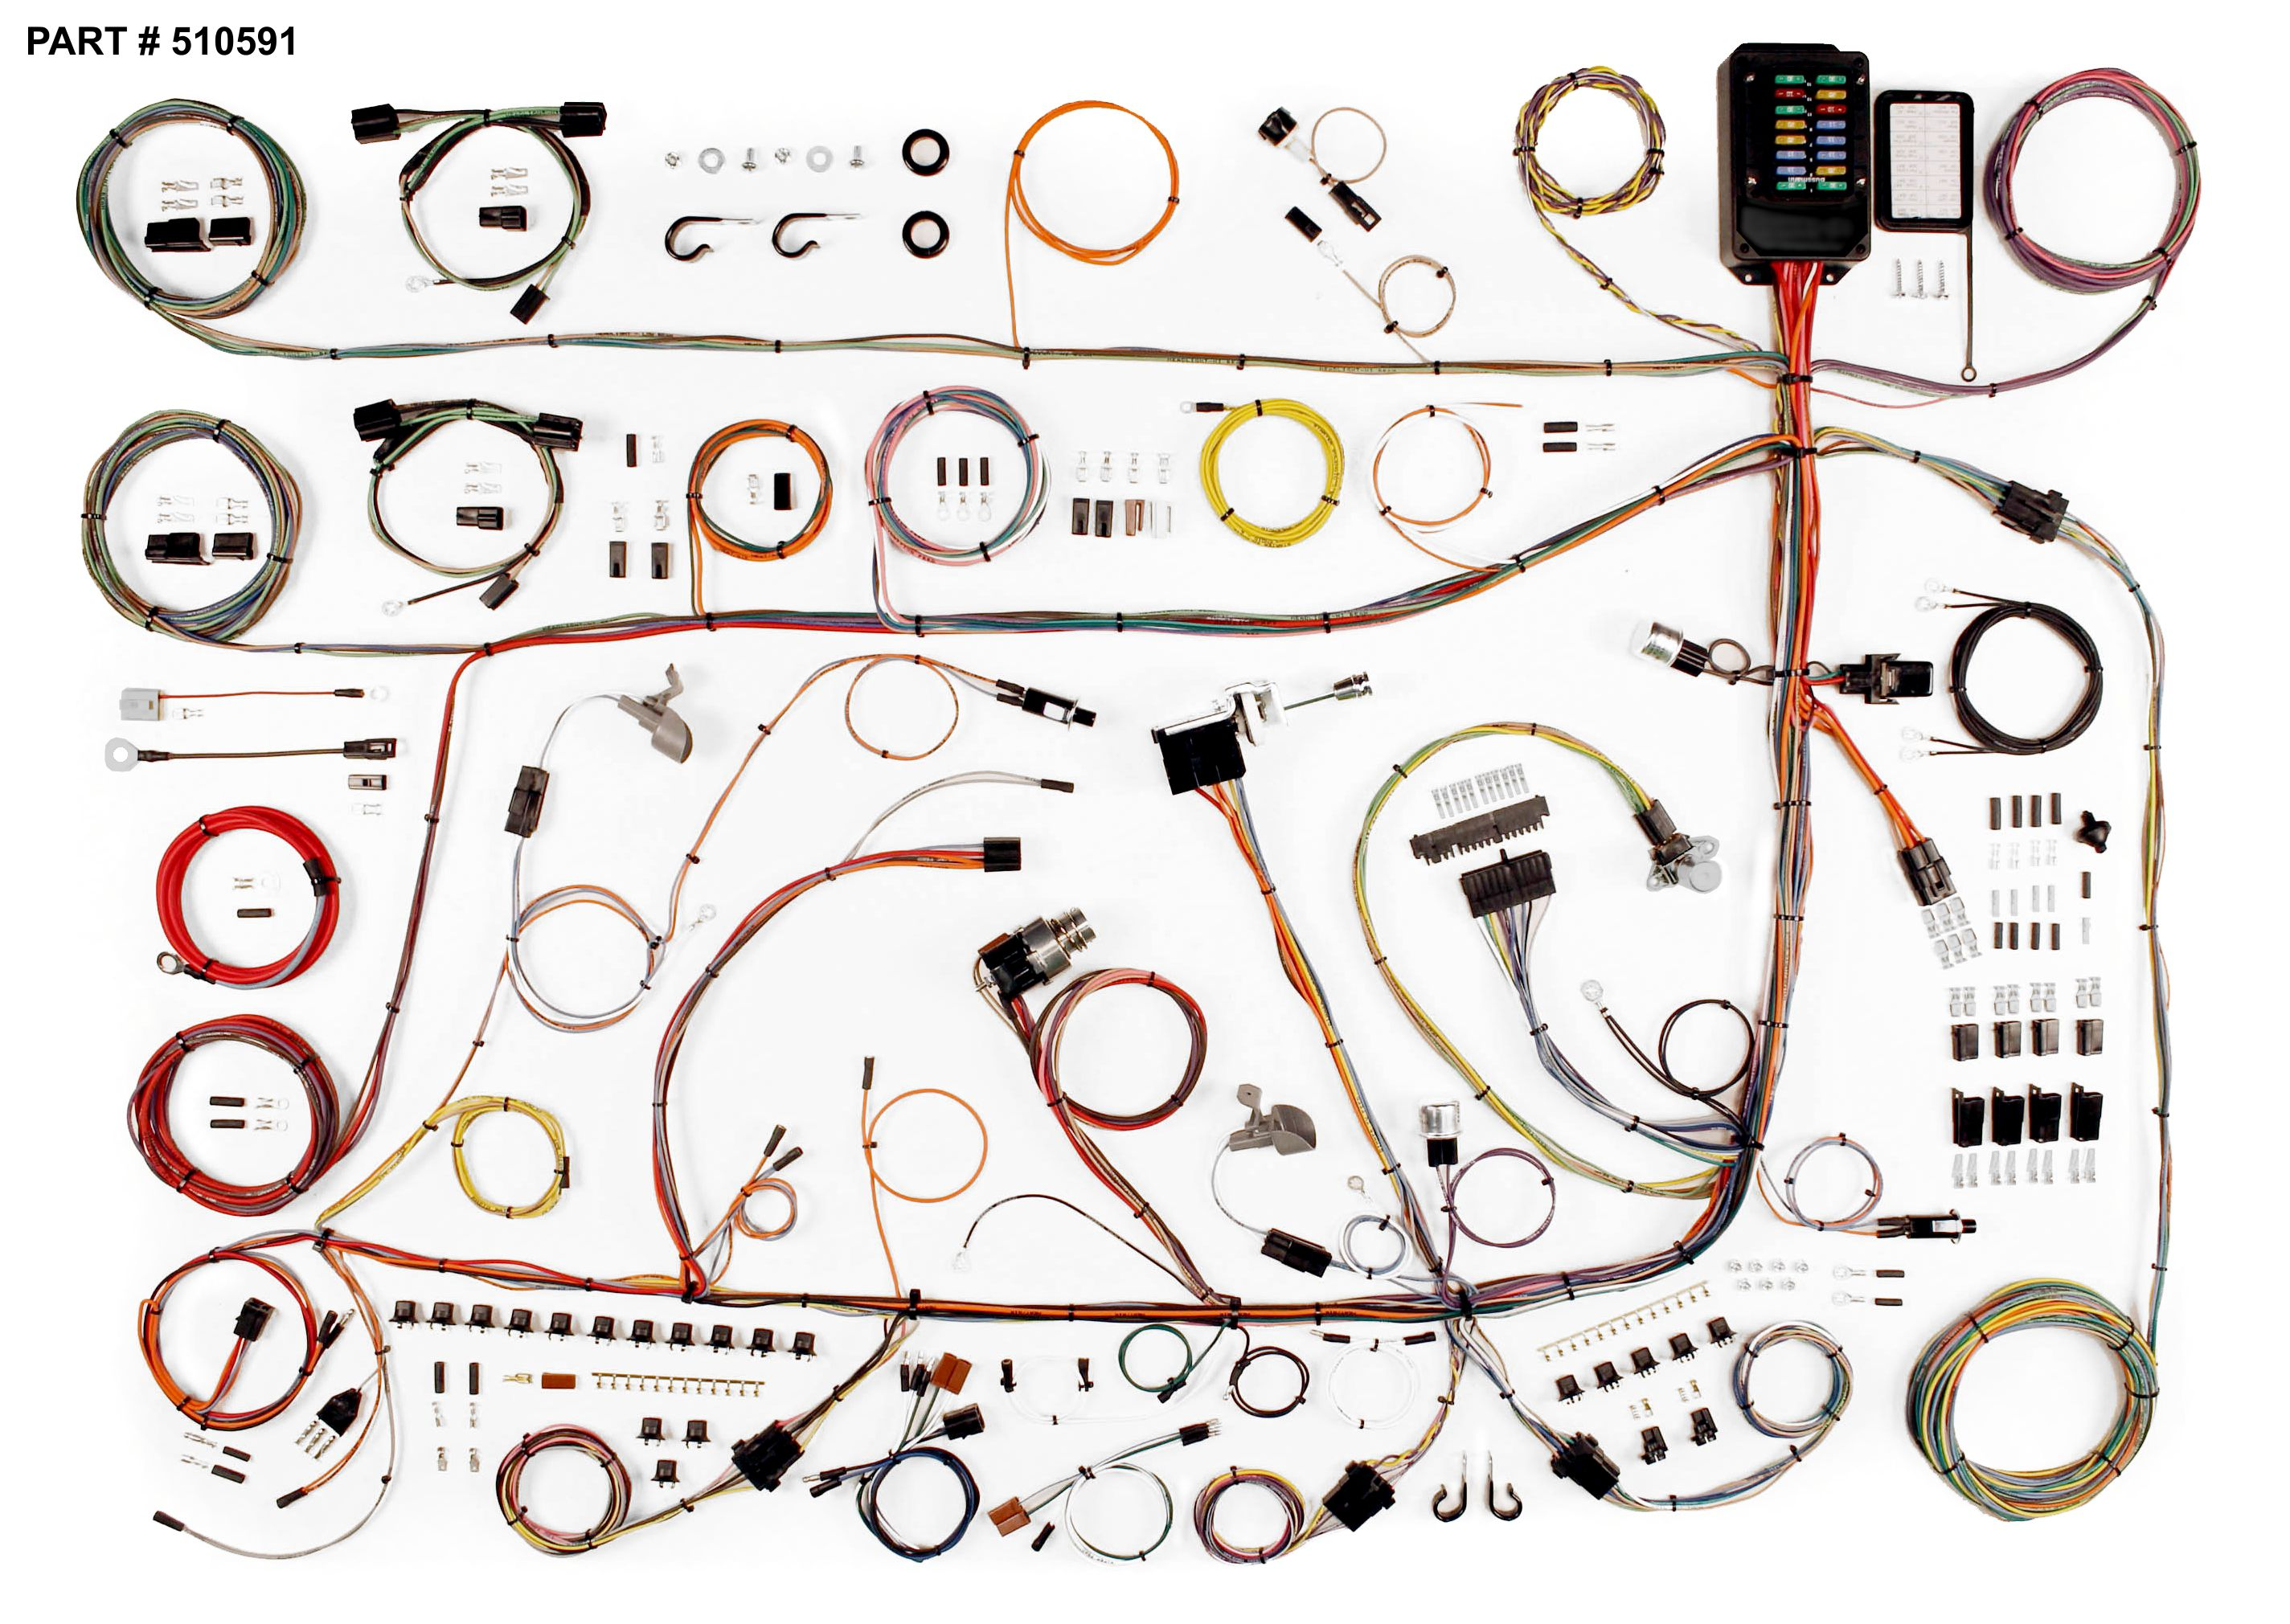 1964 Ford Galaxie Wiring Harness Content Resource Of Diagram Clip 90016 1960 Mercury Fullsize Restomod System Rh Lectriclimited Com 500 1966